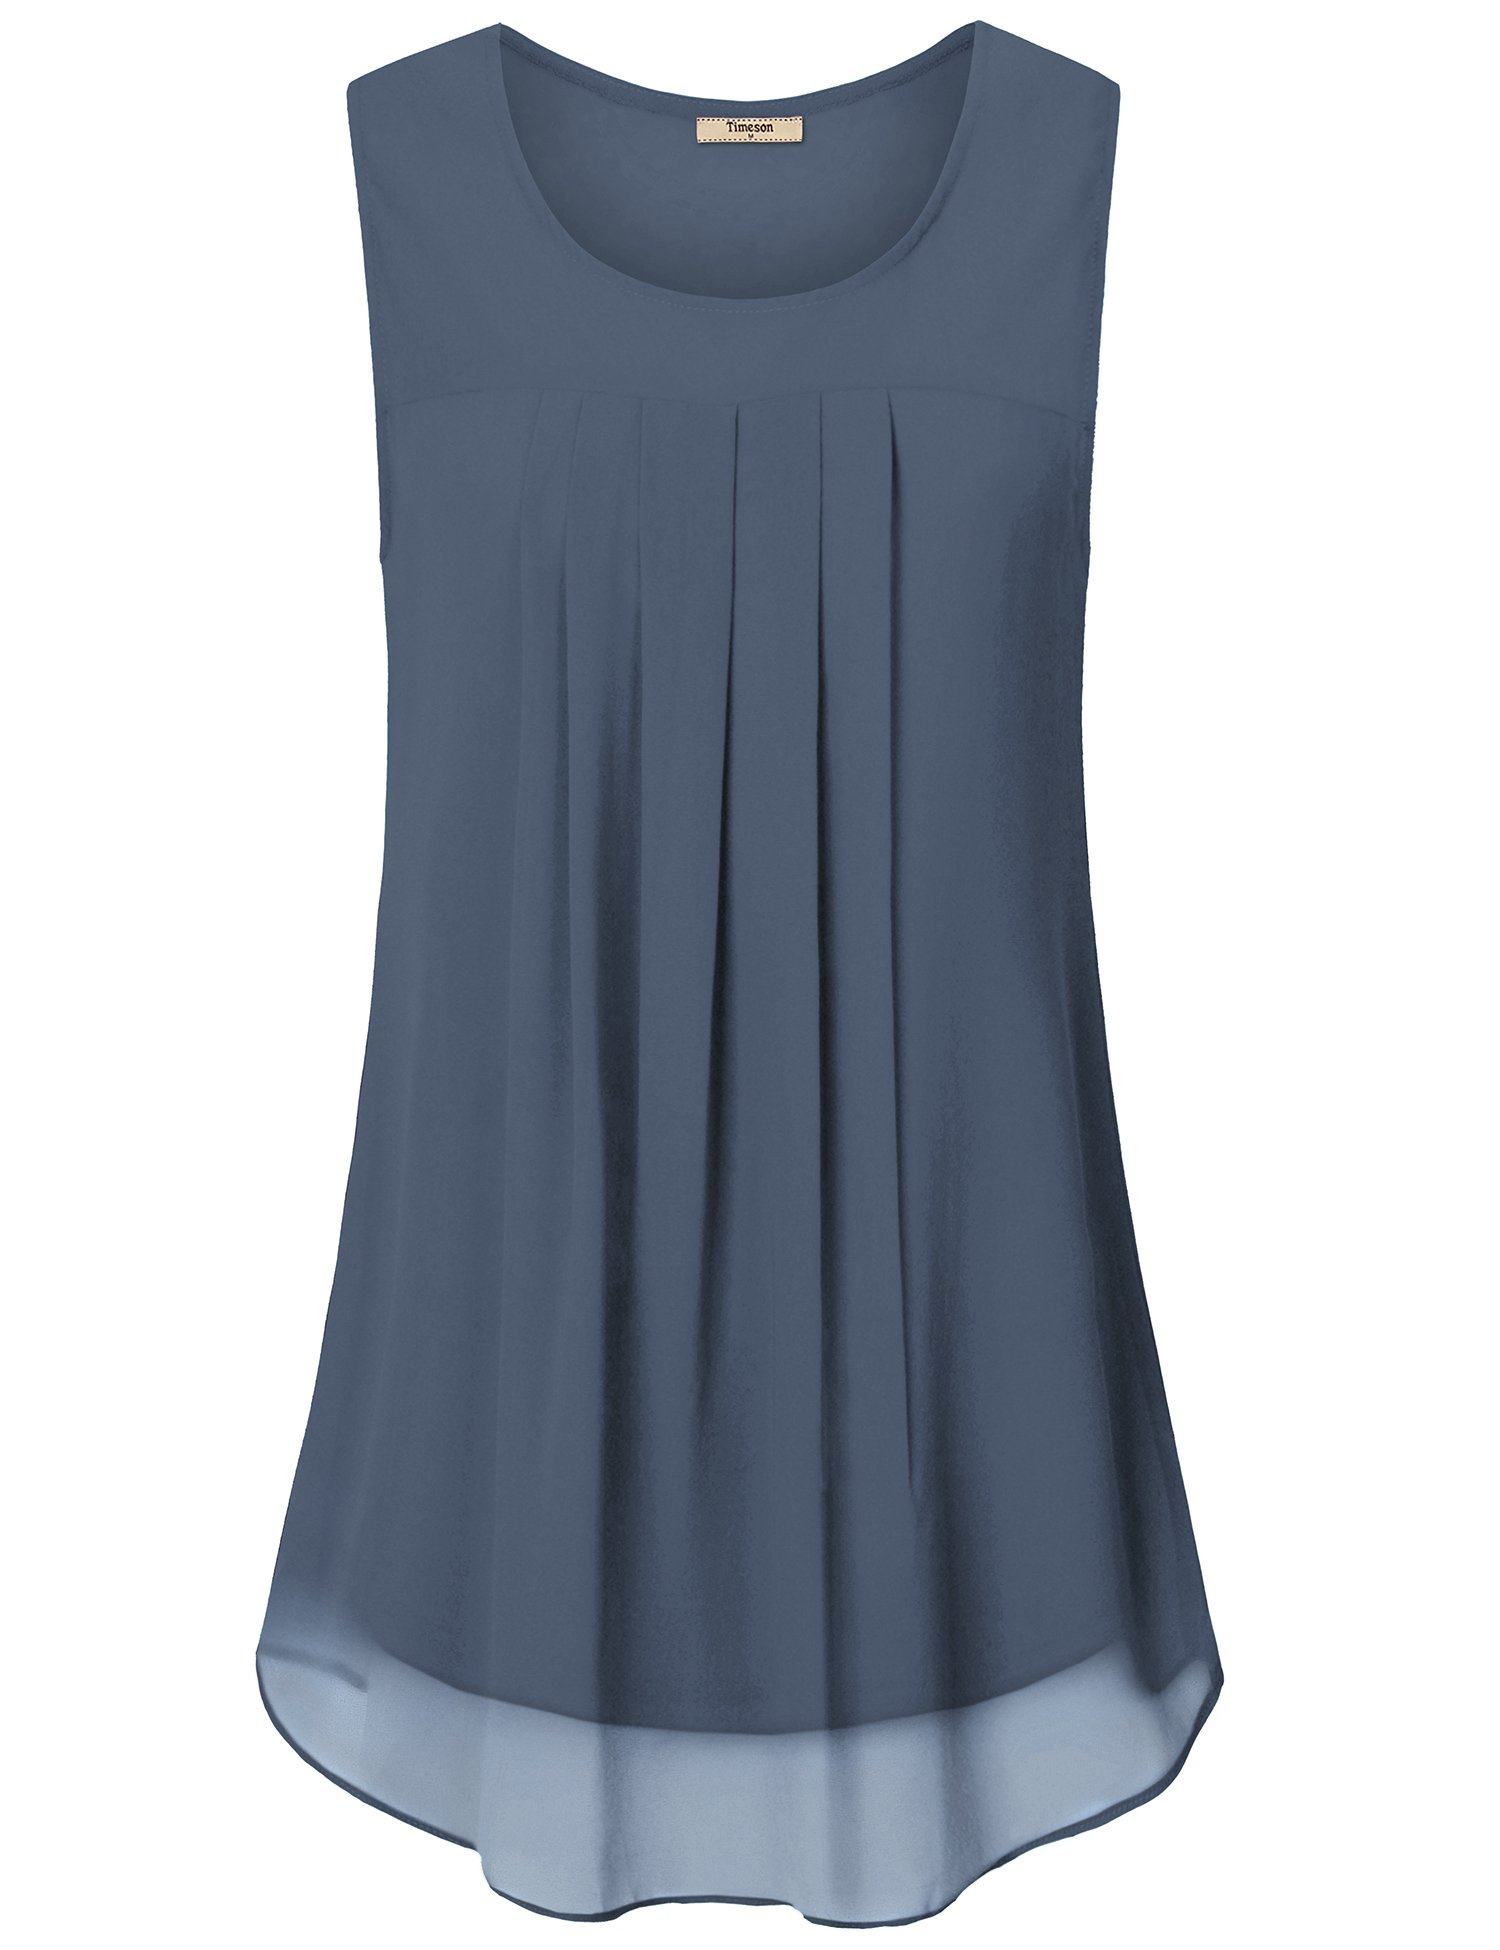 Timeson Women Tops for Work Office, Ladies Sleeveless Casual Tunis Shirts Gray Summer Chiffon Tank Tops Swing Comfy A Line Sleeveless Business Work Blouses for Leggings Blue Gray X-Large